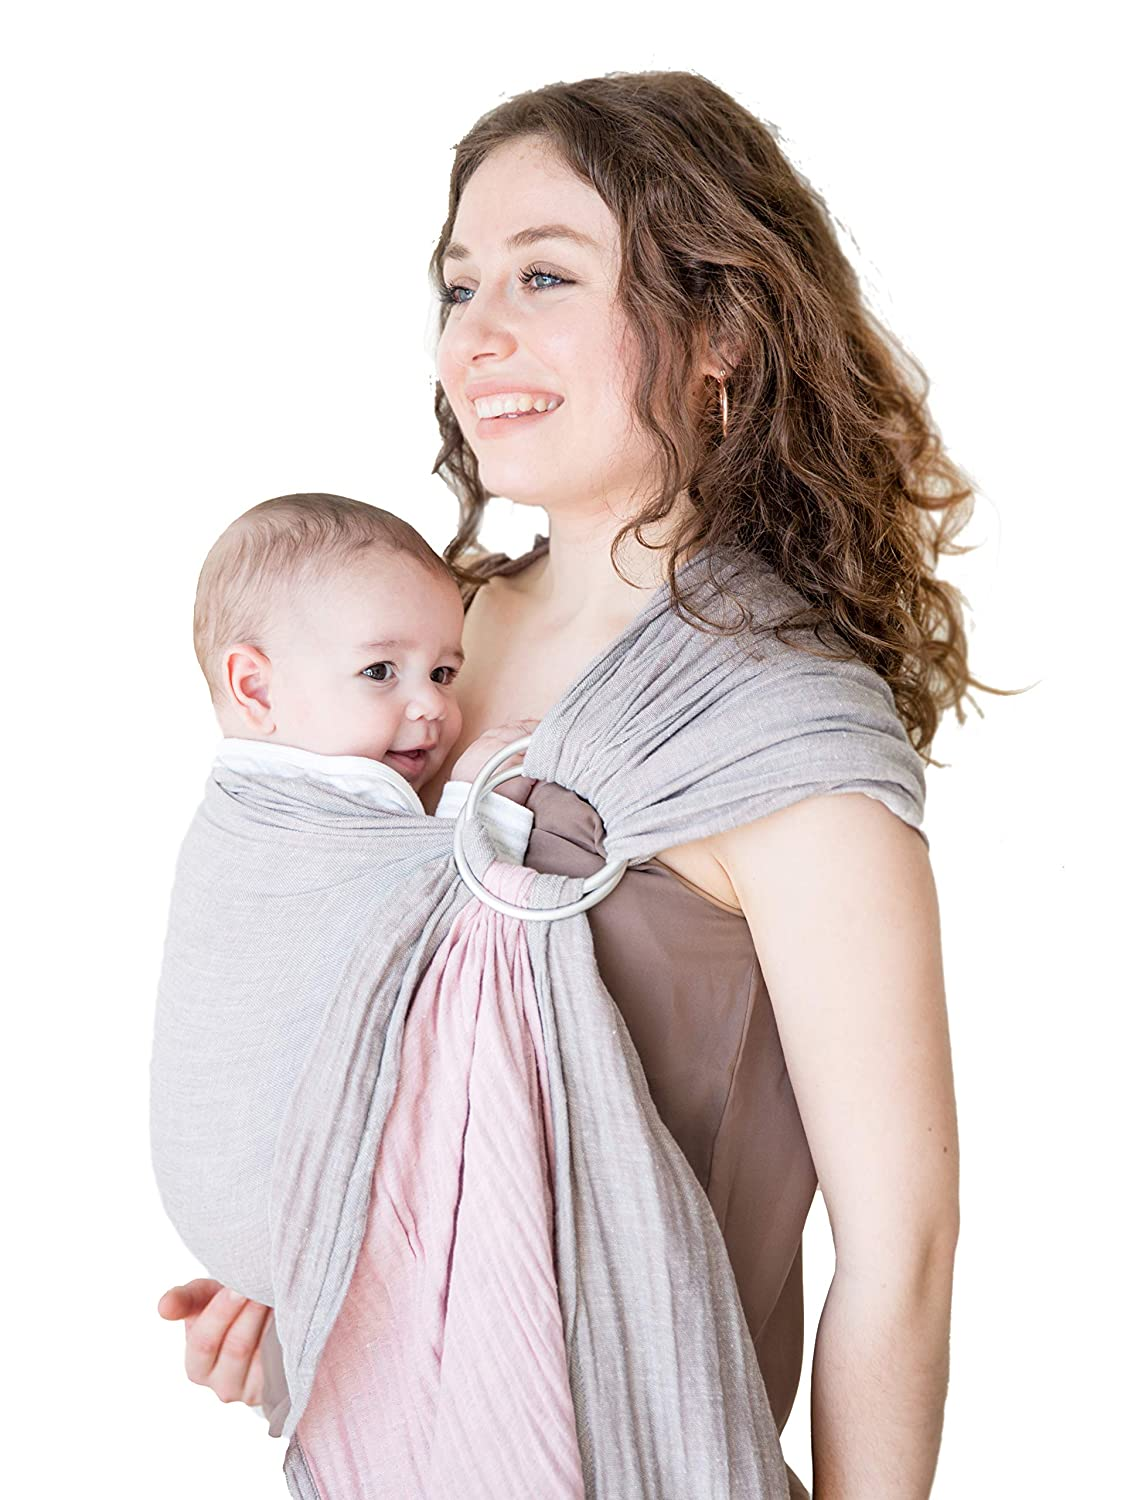 Backpacks & Carriers Practical Soft Baby Carrier Cotton Ring Baby Sling Carrier Baby Holder Extra Comfortable For Easy Wearing Carrying Of Newborn Infant Gifts Online Shop